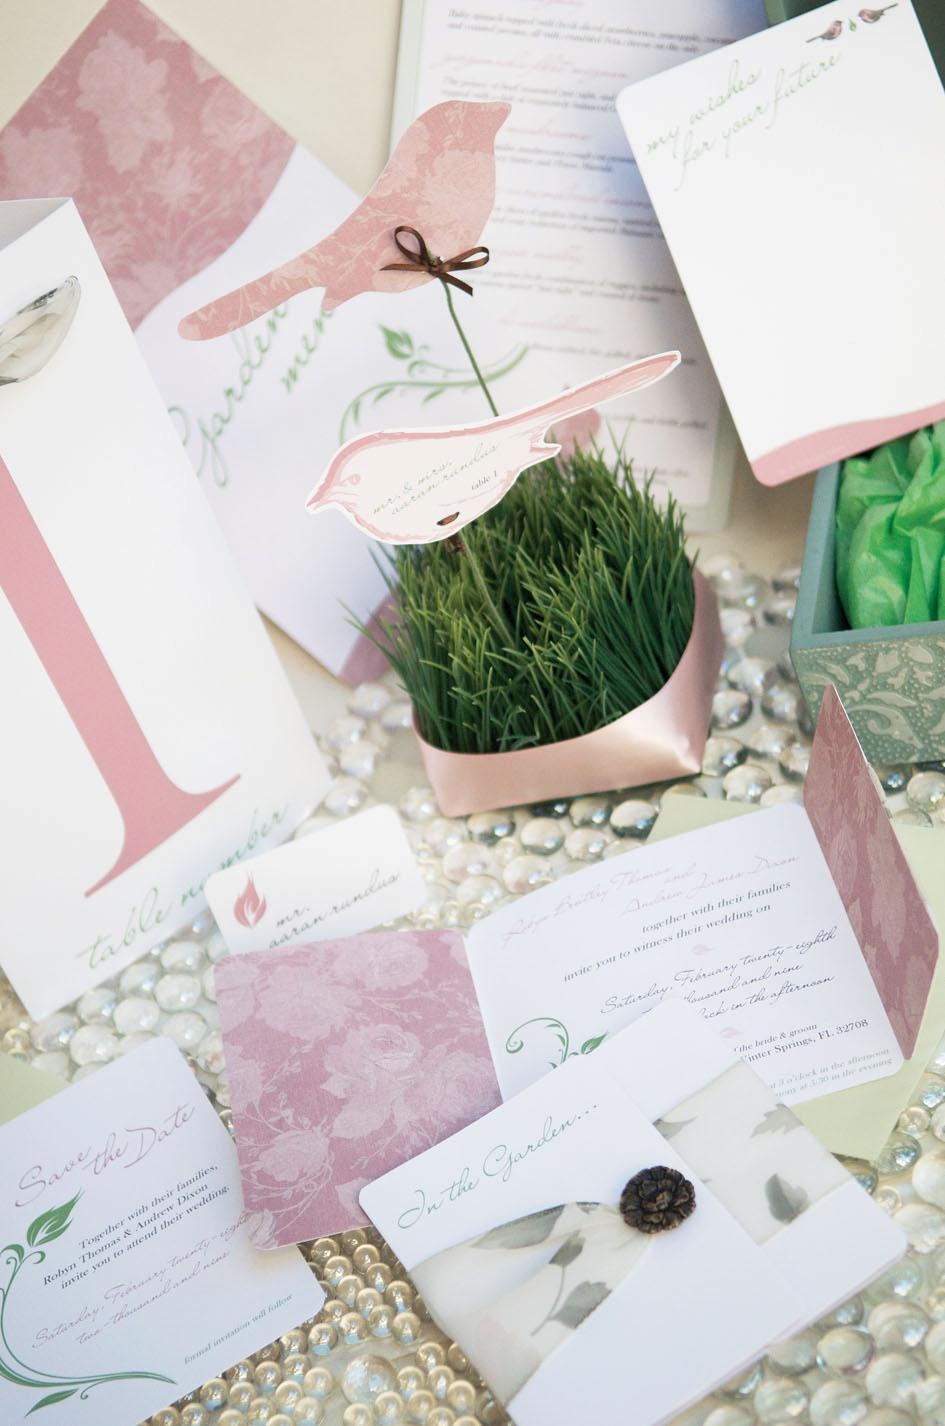 U2collection-couture-custom-wedding-invitations-stationery-etsy-garden-letterpress-set-sage-dusty-rose-white-pearl.full